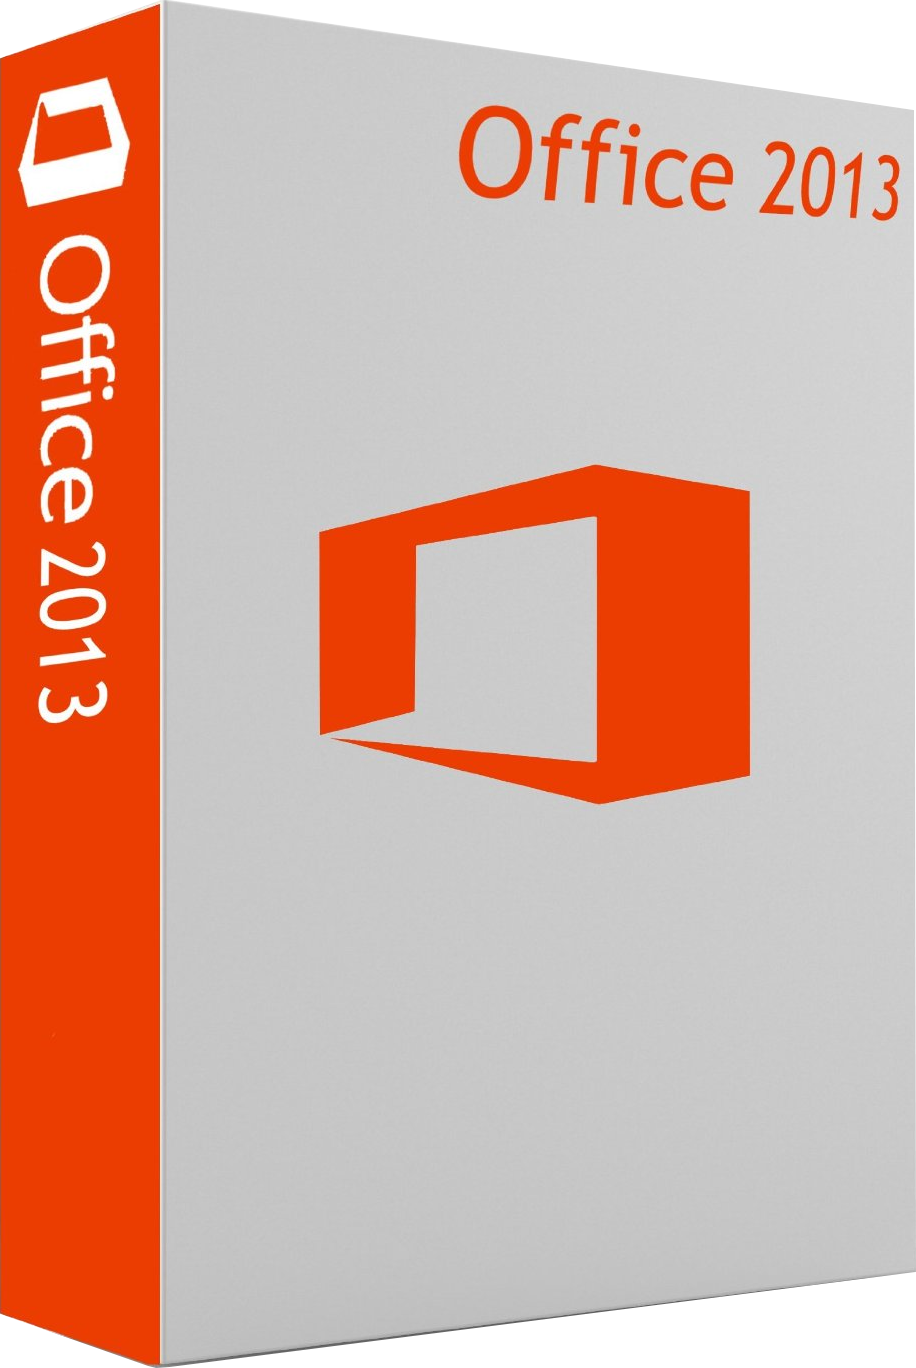 Microsoft office 2013 download fully pc games autos post - Office 2013 full crack free download ...